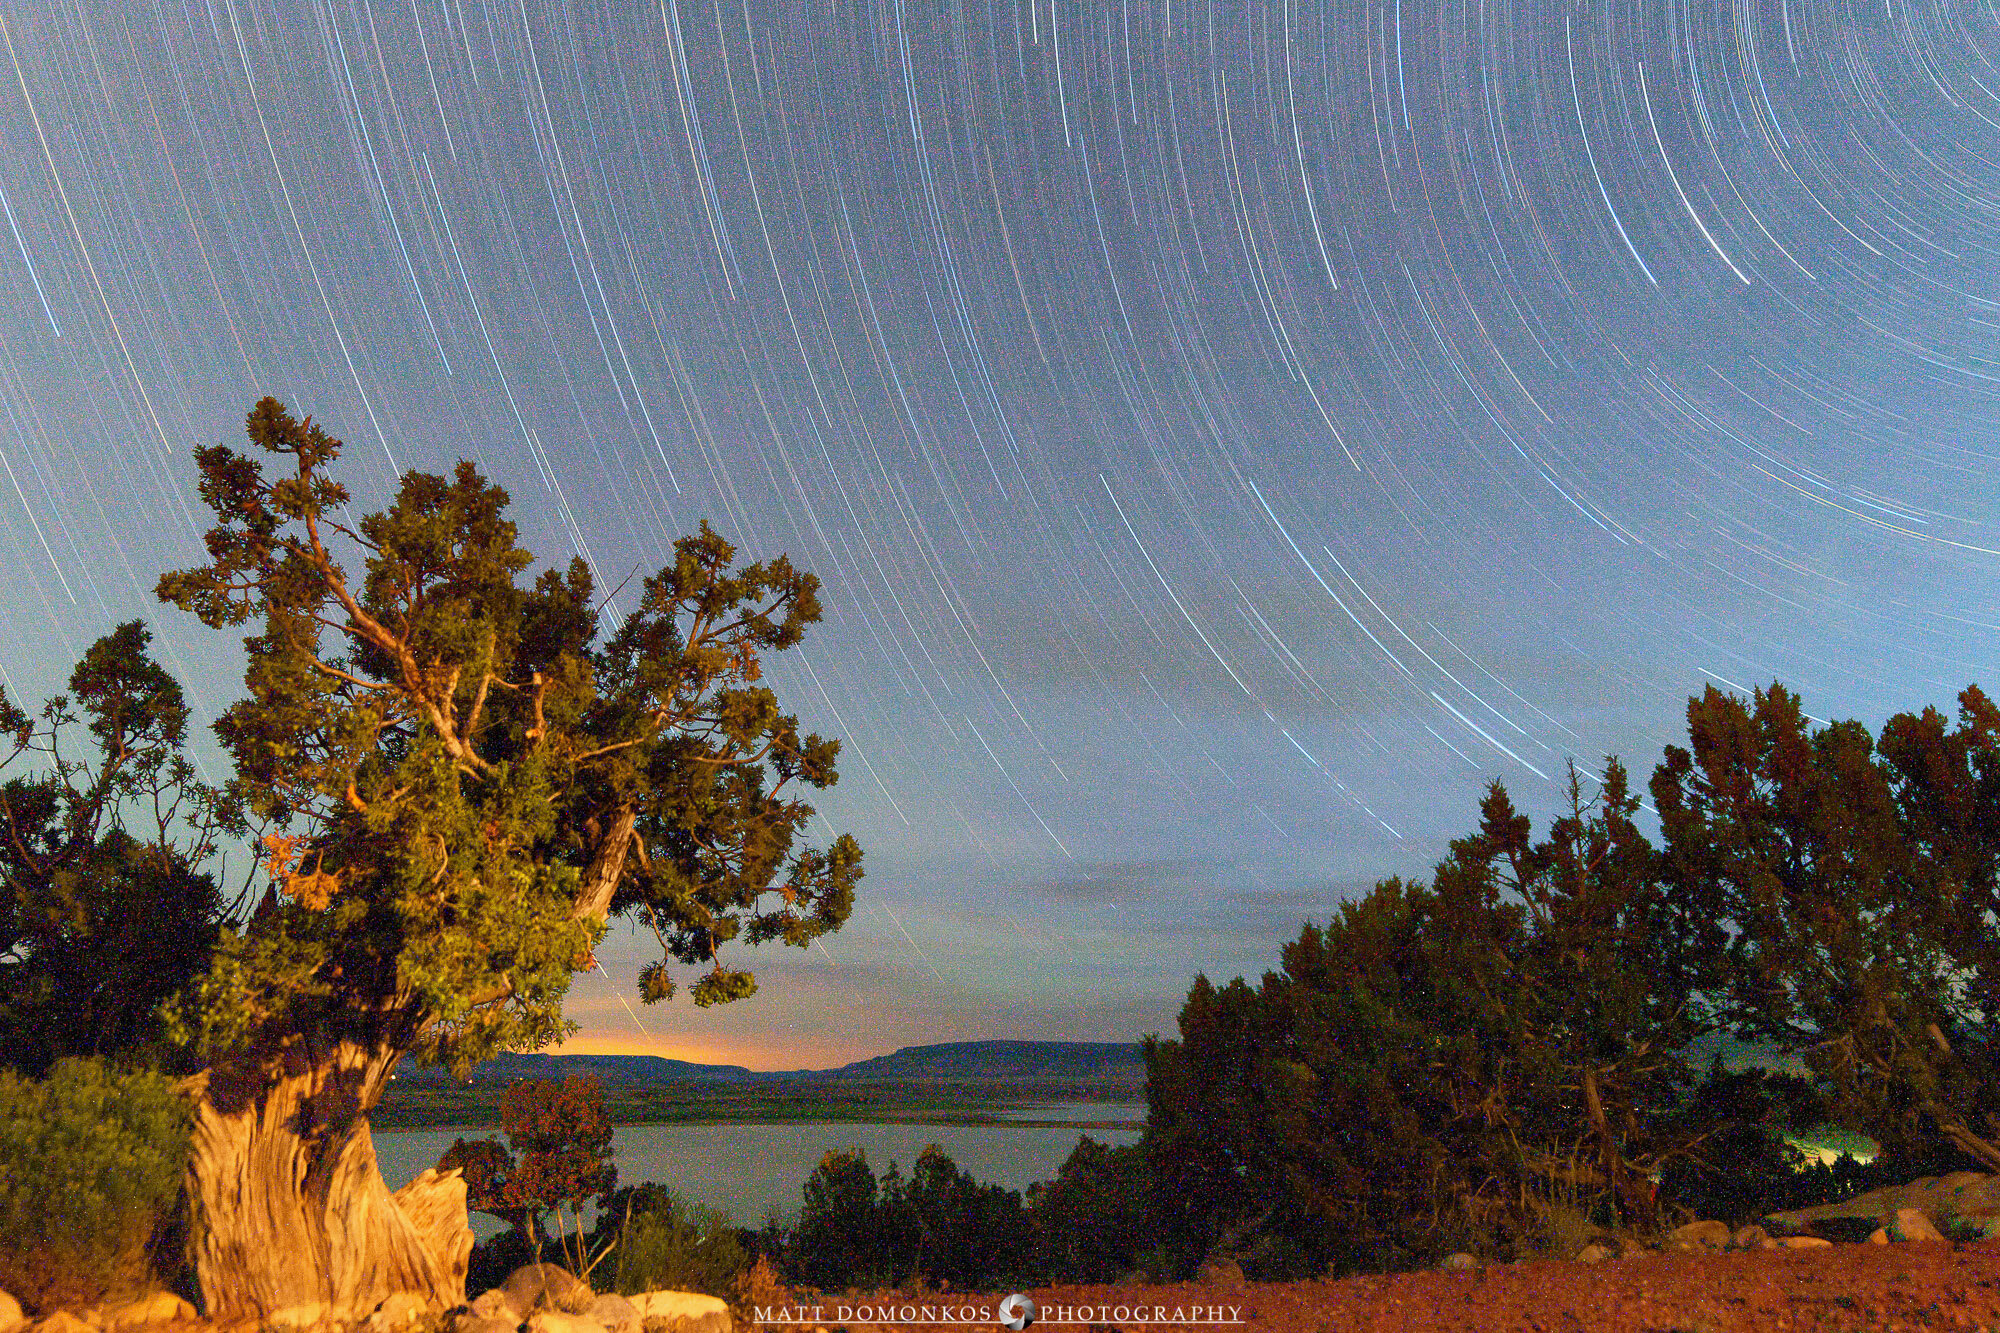 Star trails from my campground looking over Abiquiu Lake toward the horizon. I'm not exactly sure when I realized the shutter timer had failed, but the last image collected light for nearly an hour. That produced a number of hot pixels in the image, which make this a poor candidate for enlargement. Still, the features make an interesting composite.   Cheers!